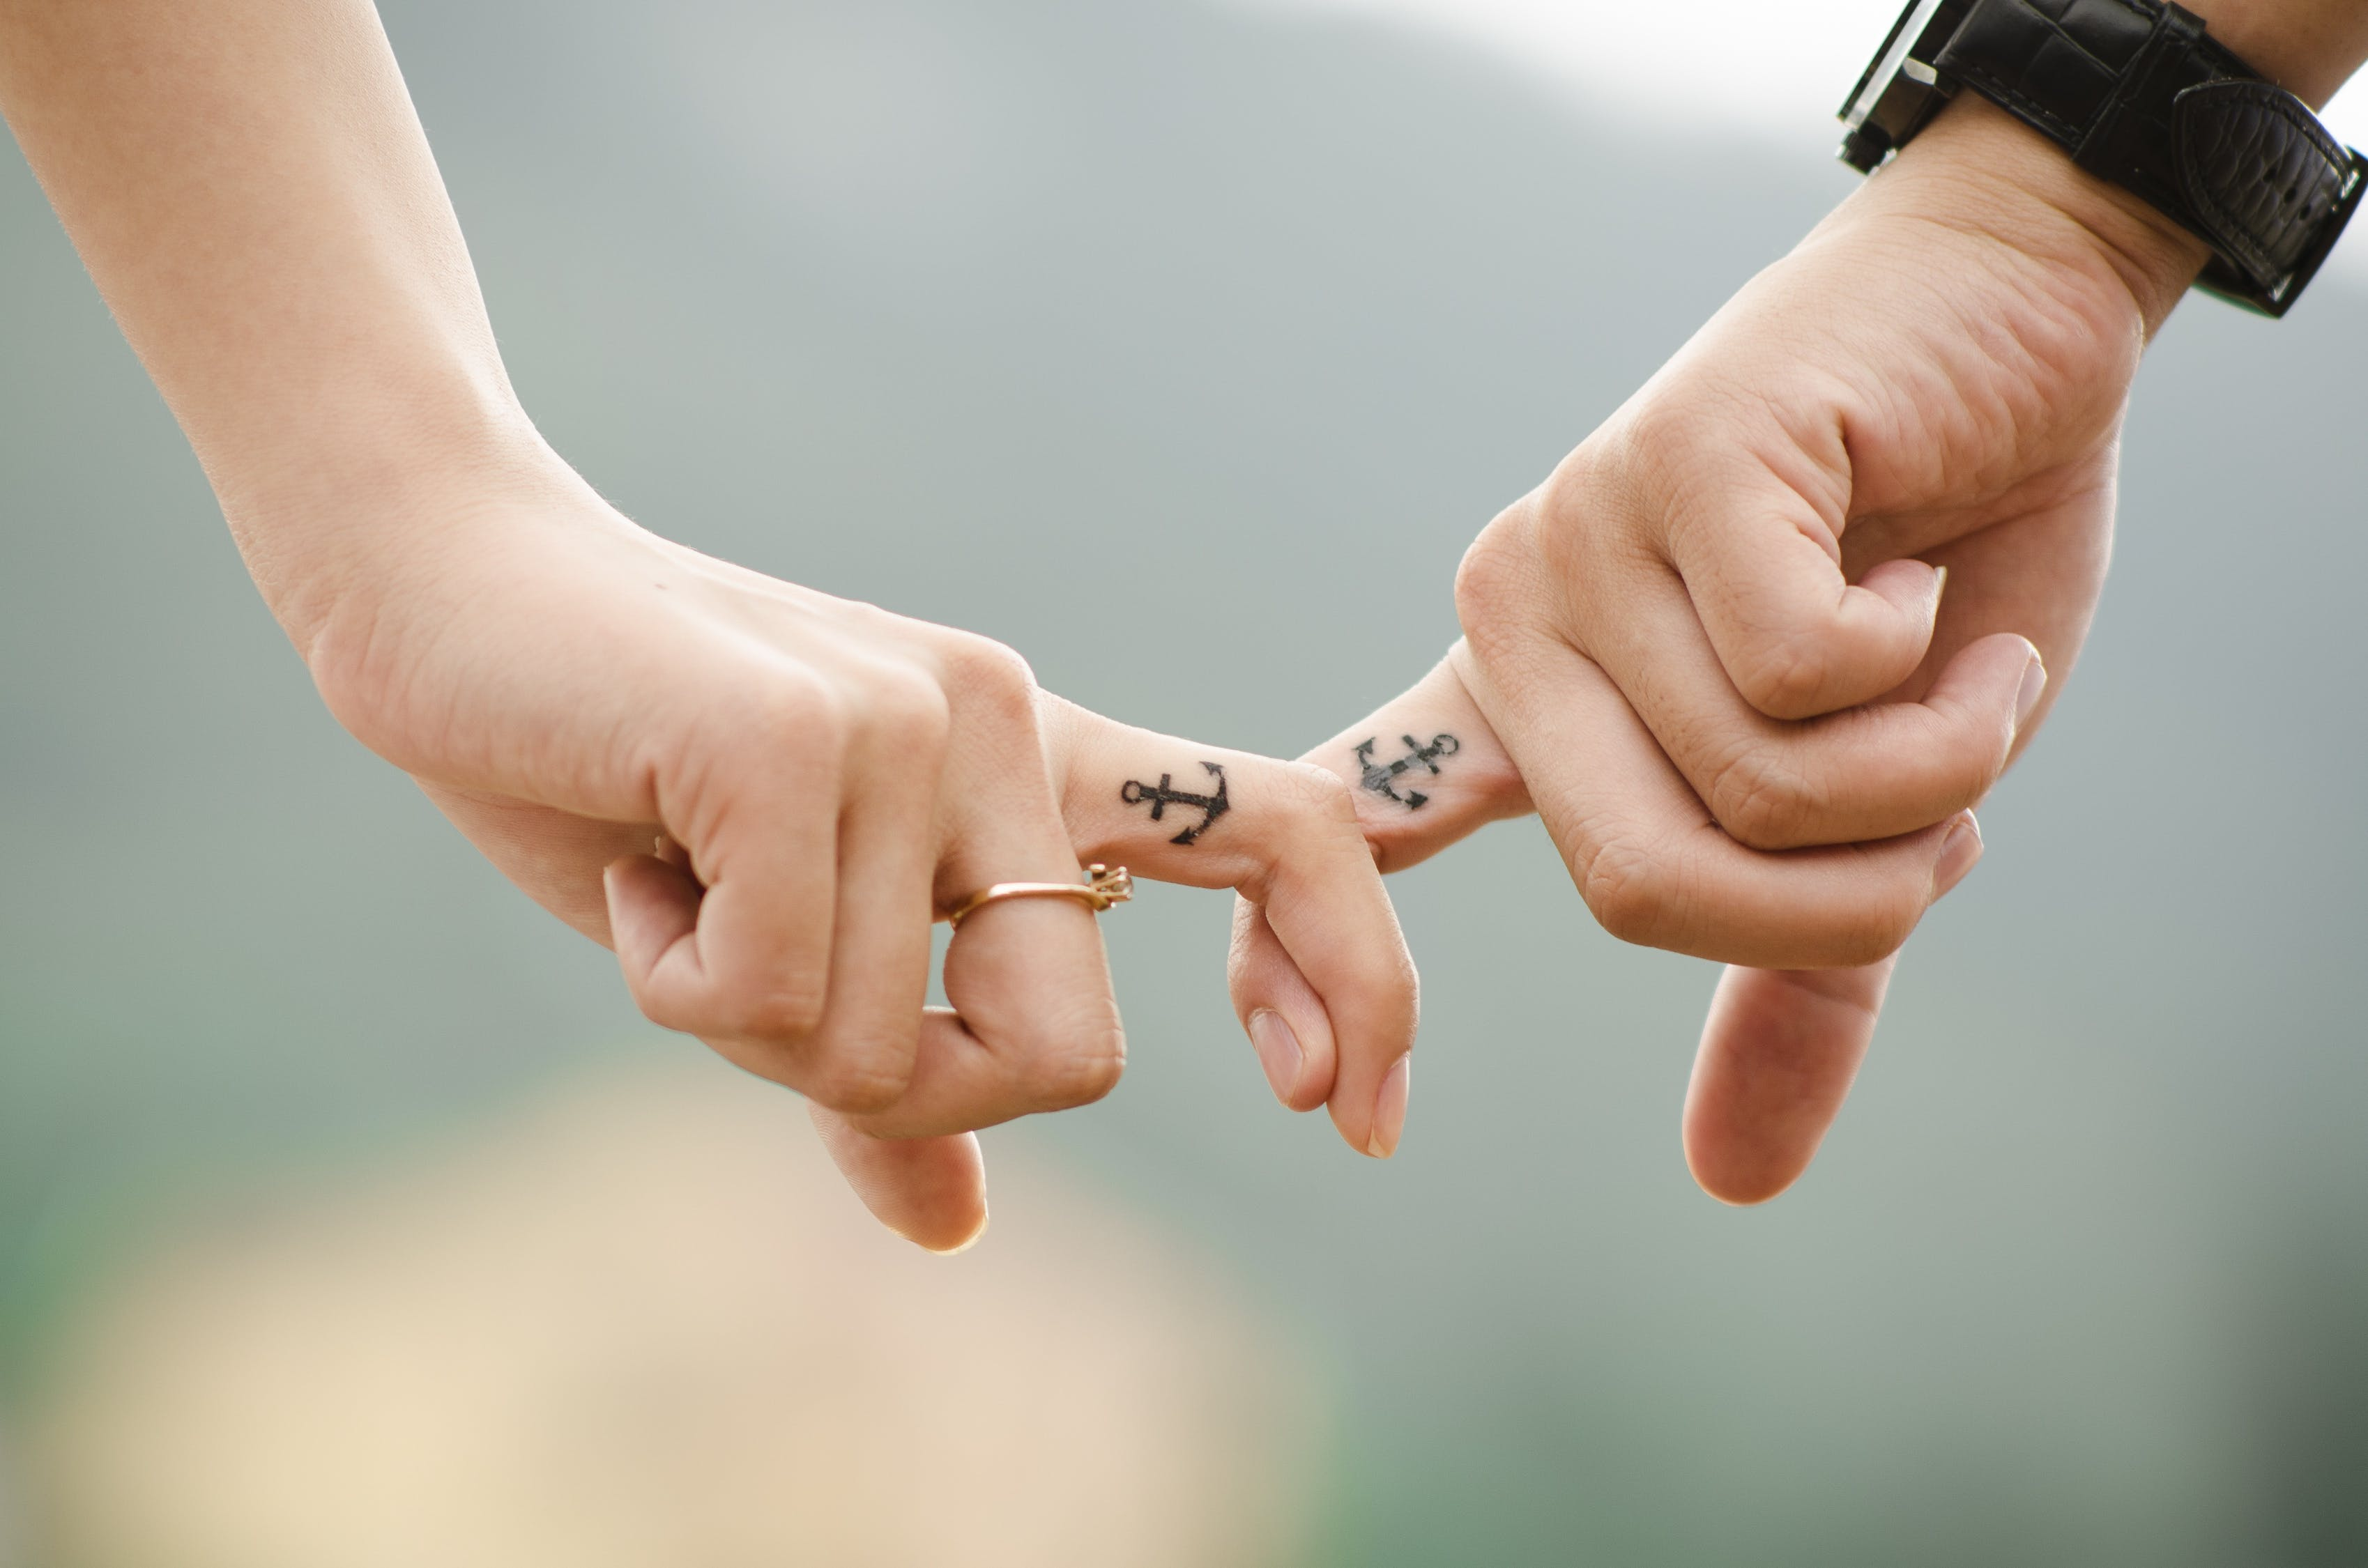 Married couple's pointed fingers are put together while their fingers are tattooed with anchor art